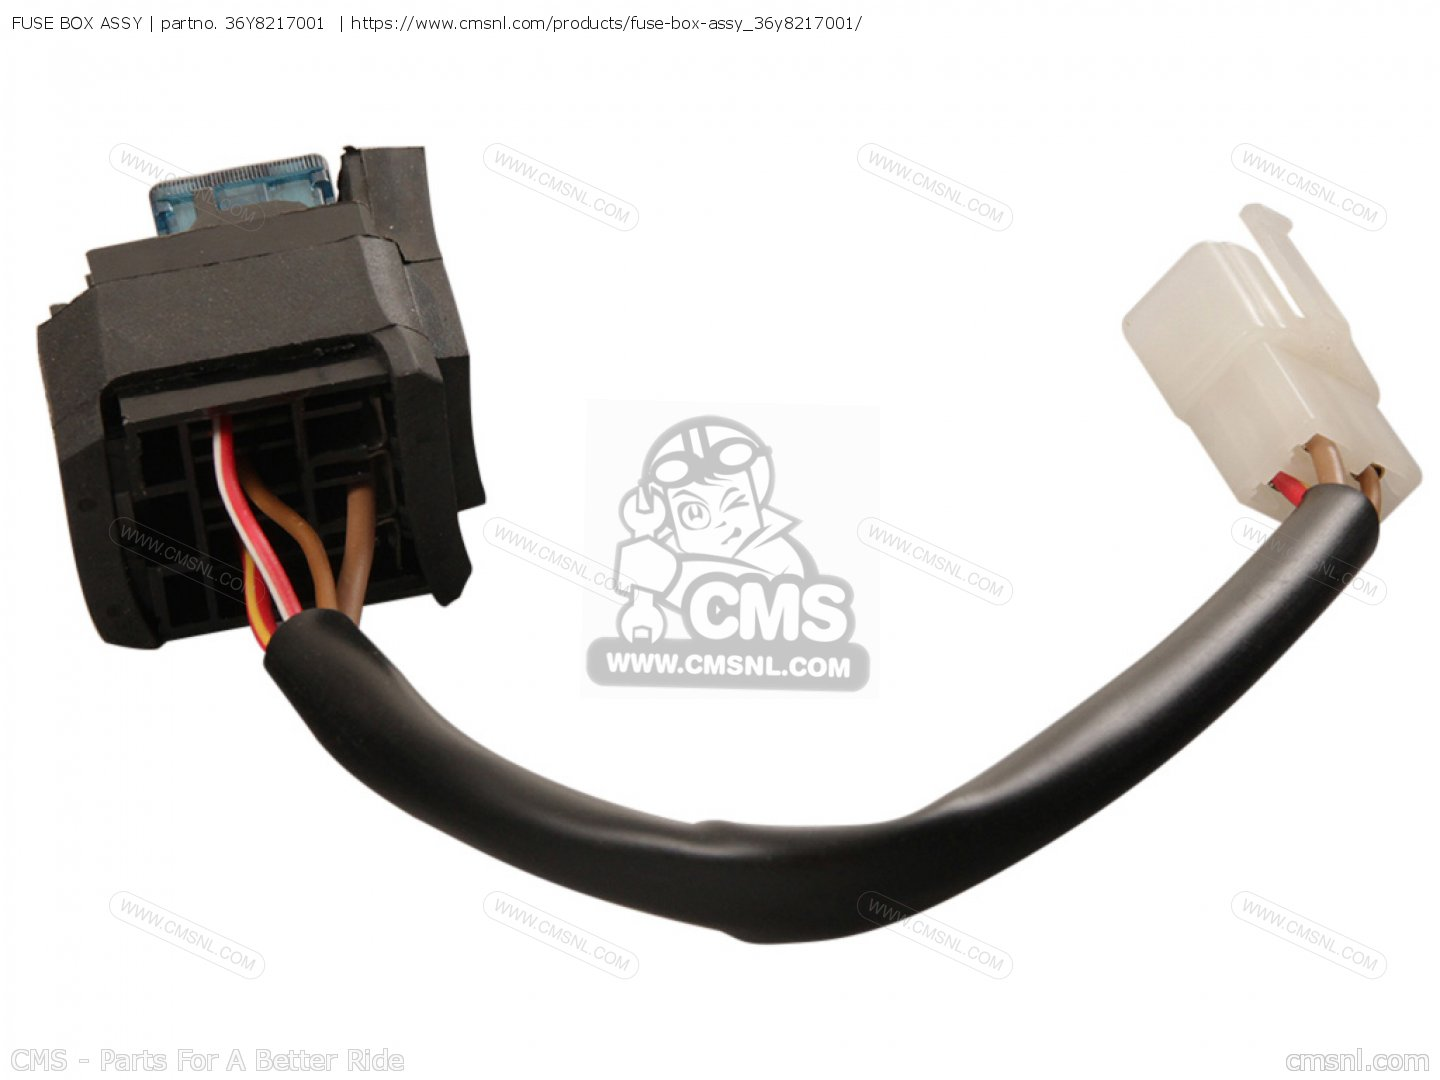 Fuse Box Assy For Fj1100 1985 Usa Order At Cmsnl Adapter Small Image Of